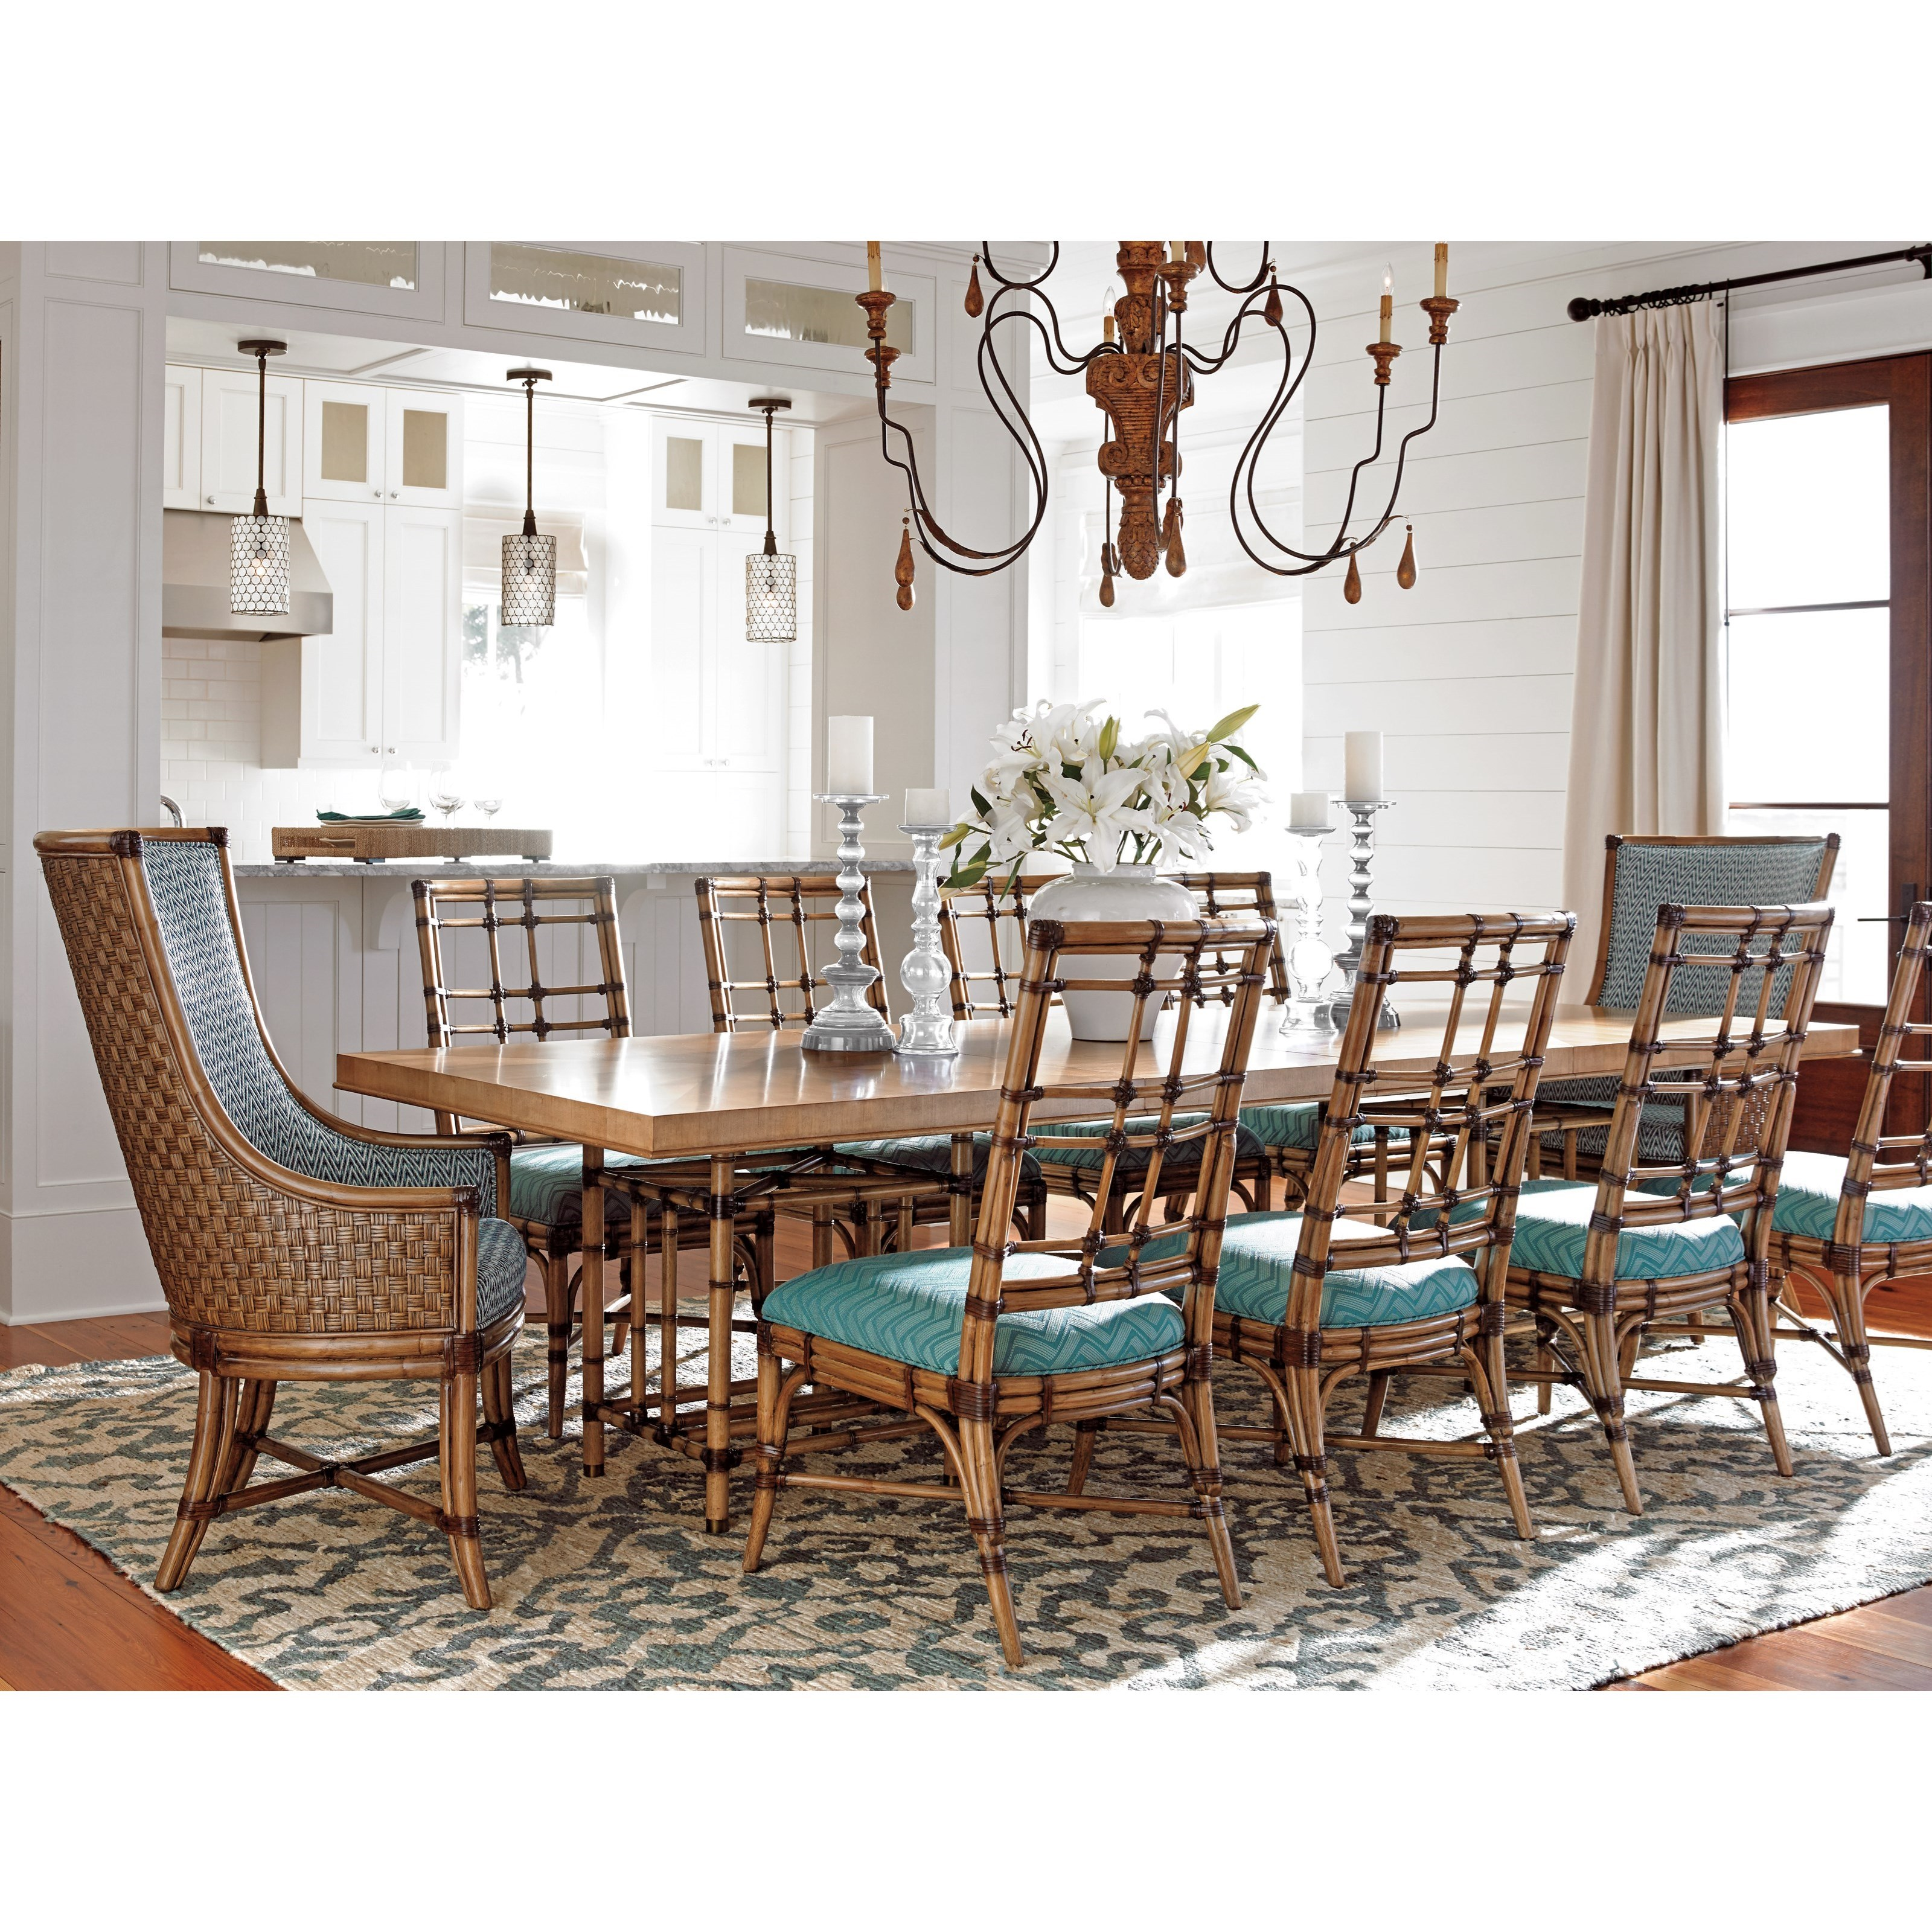 Twin Palms 11 Pc Dining Set by Tommy Bahama Home at Baer's Furniture